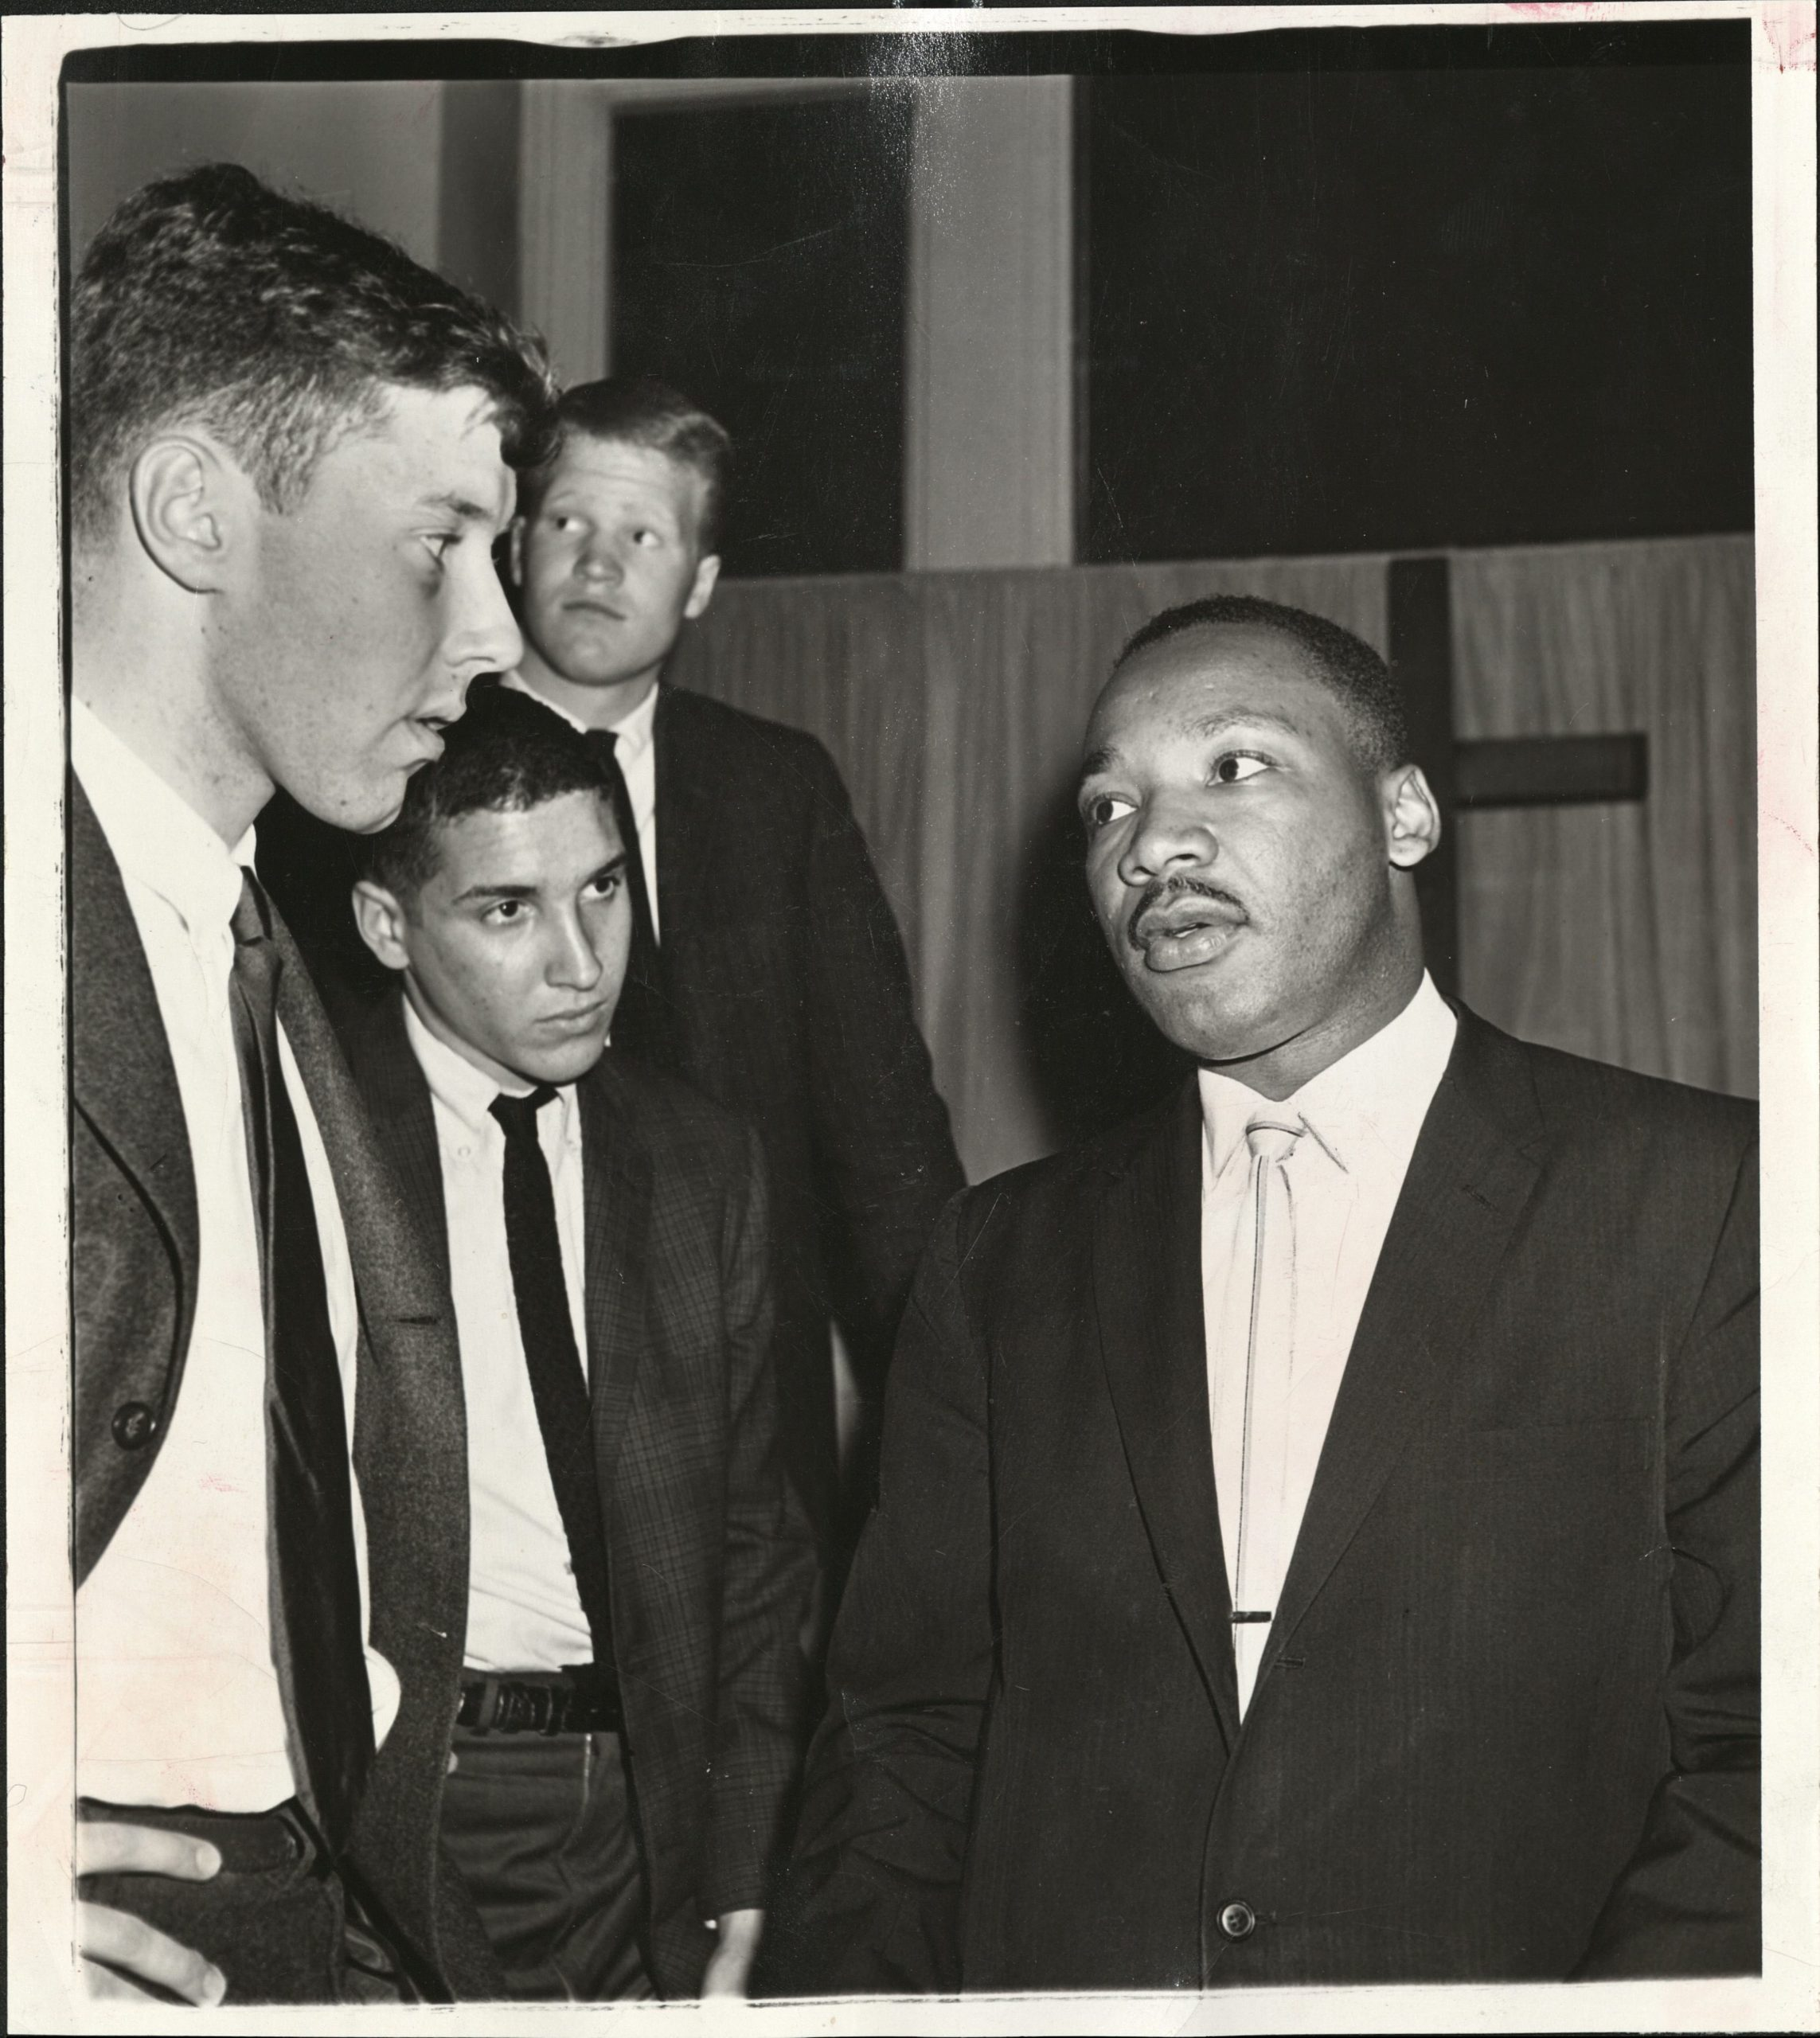 Martin Luther King, Jr. talk with three young men.